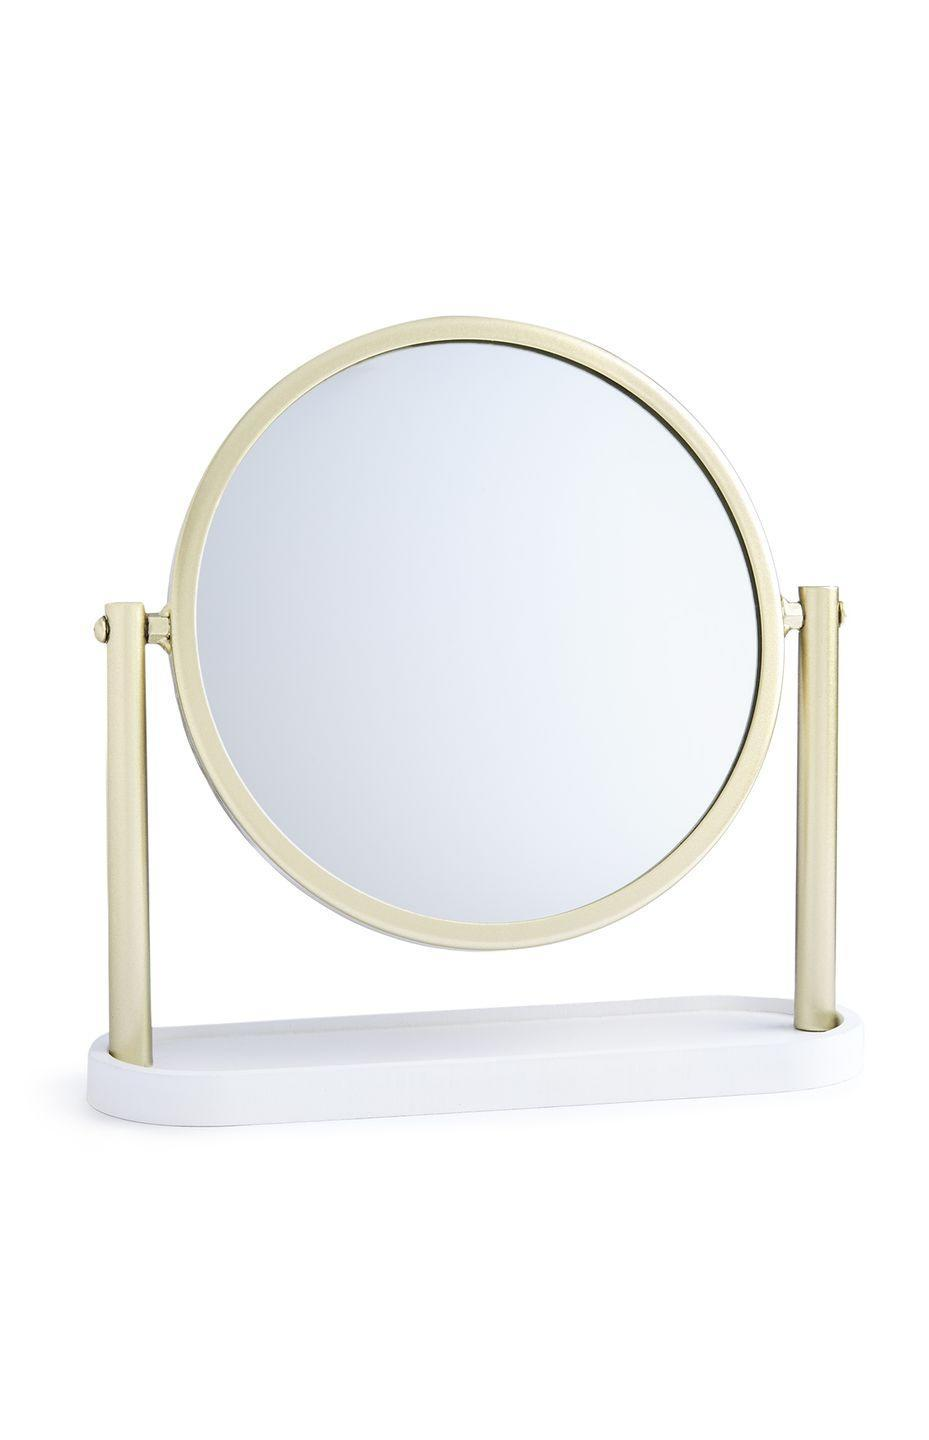 <p>Small standing mirror in gold, price unknown</p>